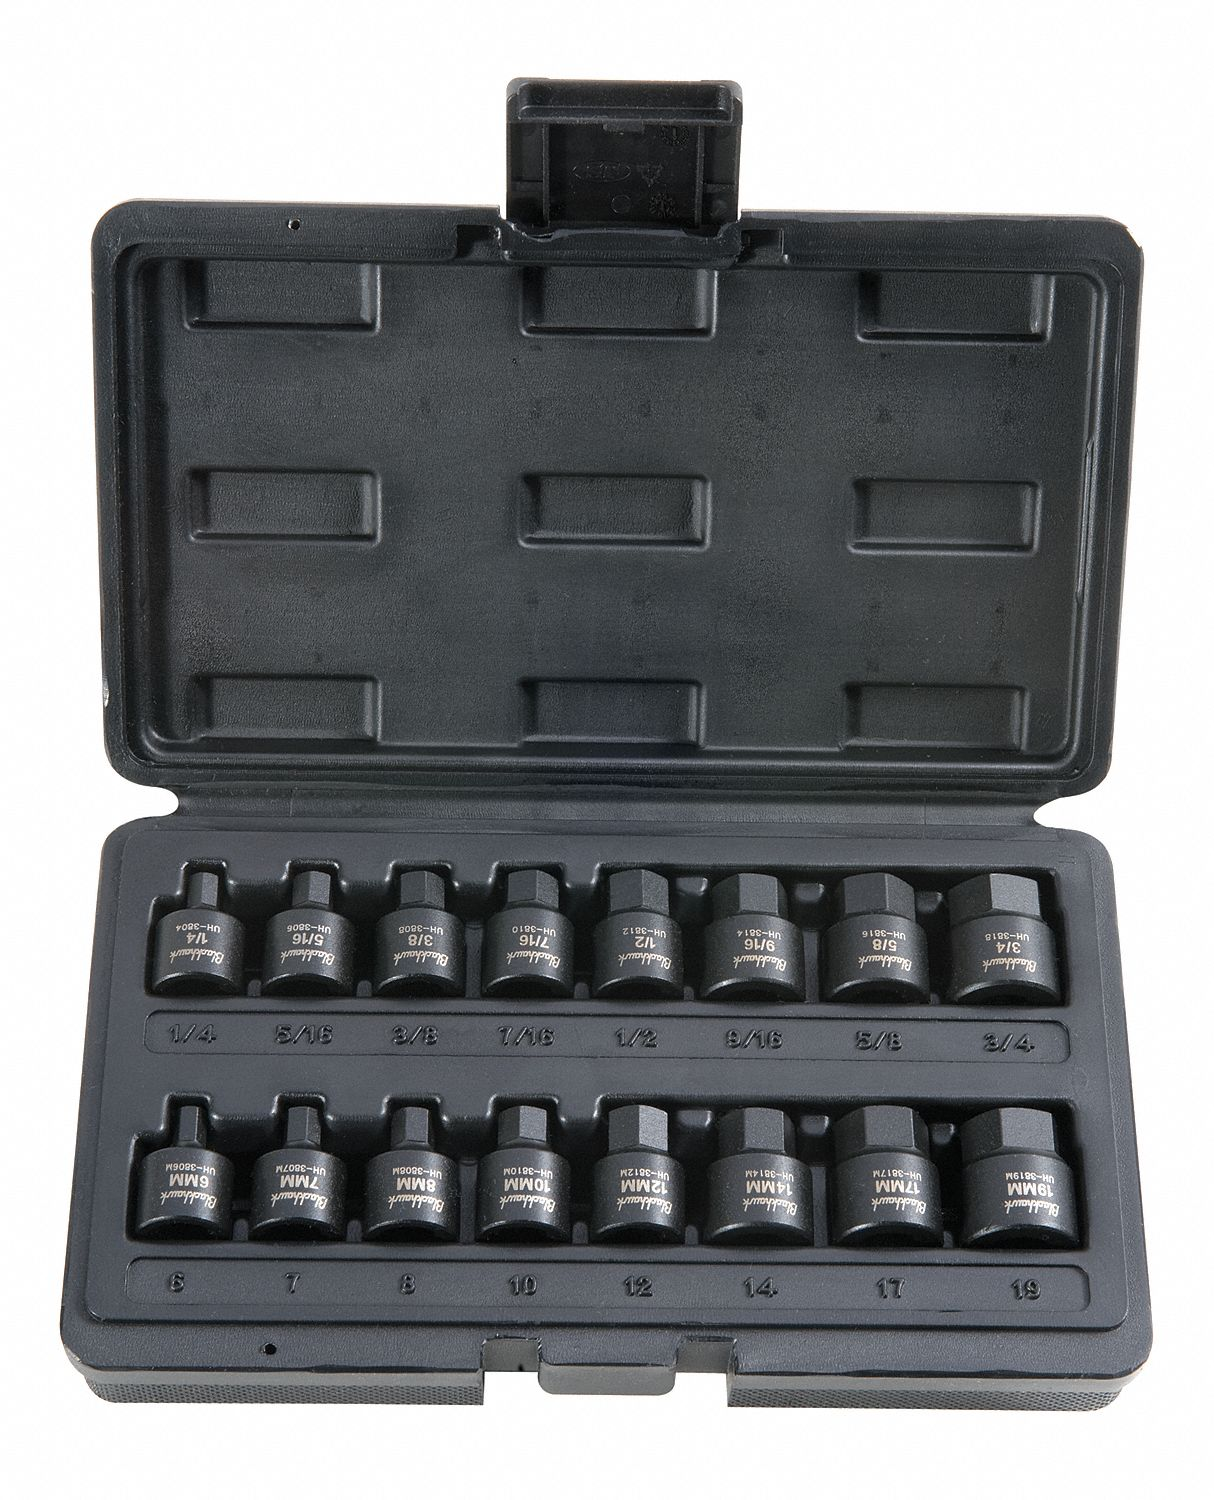 BLACKHAWK BY PROTO Socket Set, 3/8 In Dr, SAE, Impact, 16 Pcs by Blackhawk by Proto UH-3816CS at Sears.com